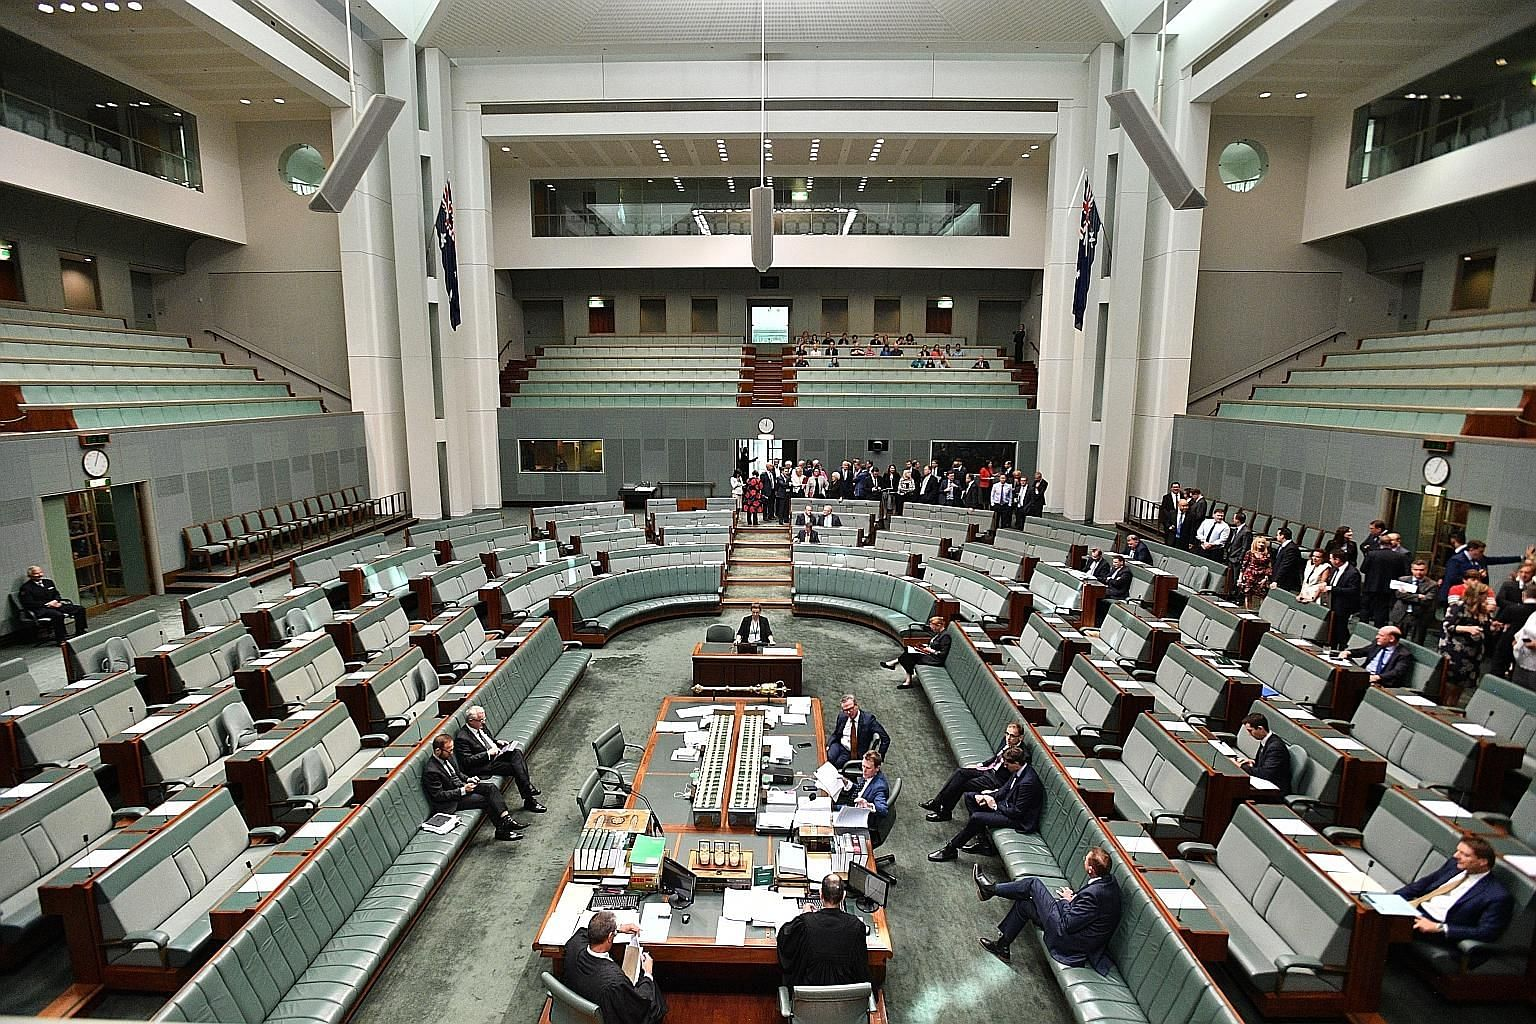 Australian MPs during a session on the Encryption Bill in the House of Representatives at Parliament House in Canberra yesterday. Critics have warned the legislation could undermine security across the Internet, jeopardising activities from online vo